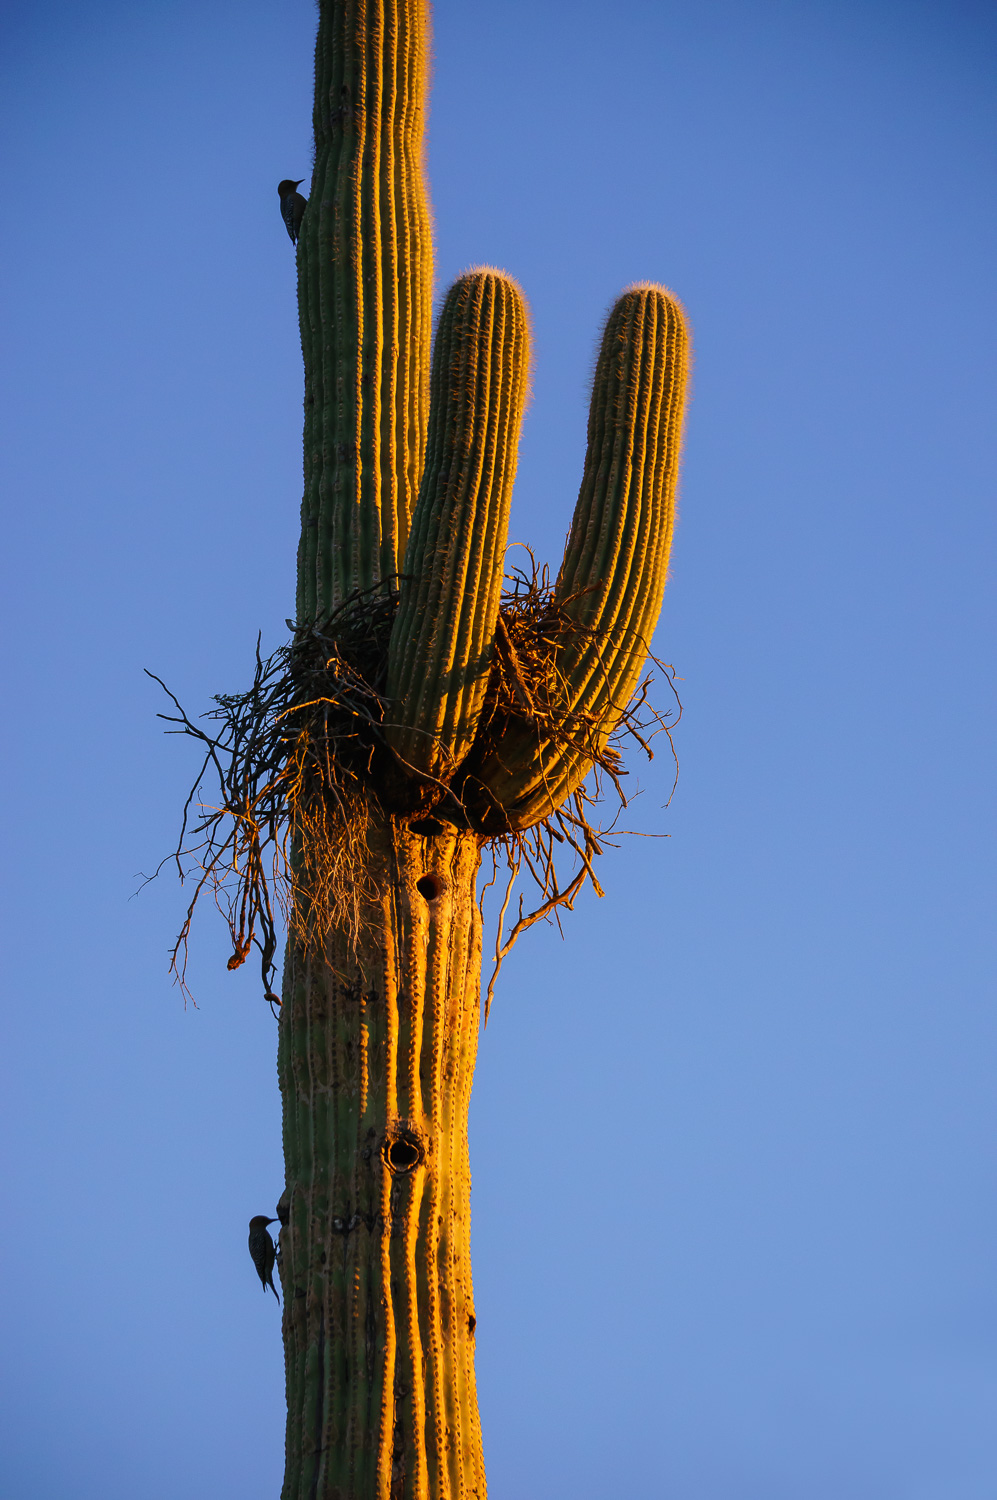 Image: The sidelight on this saguaro cactus emphasizes it's shape and texture.